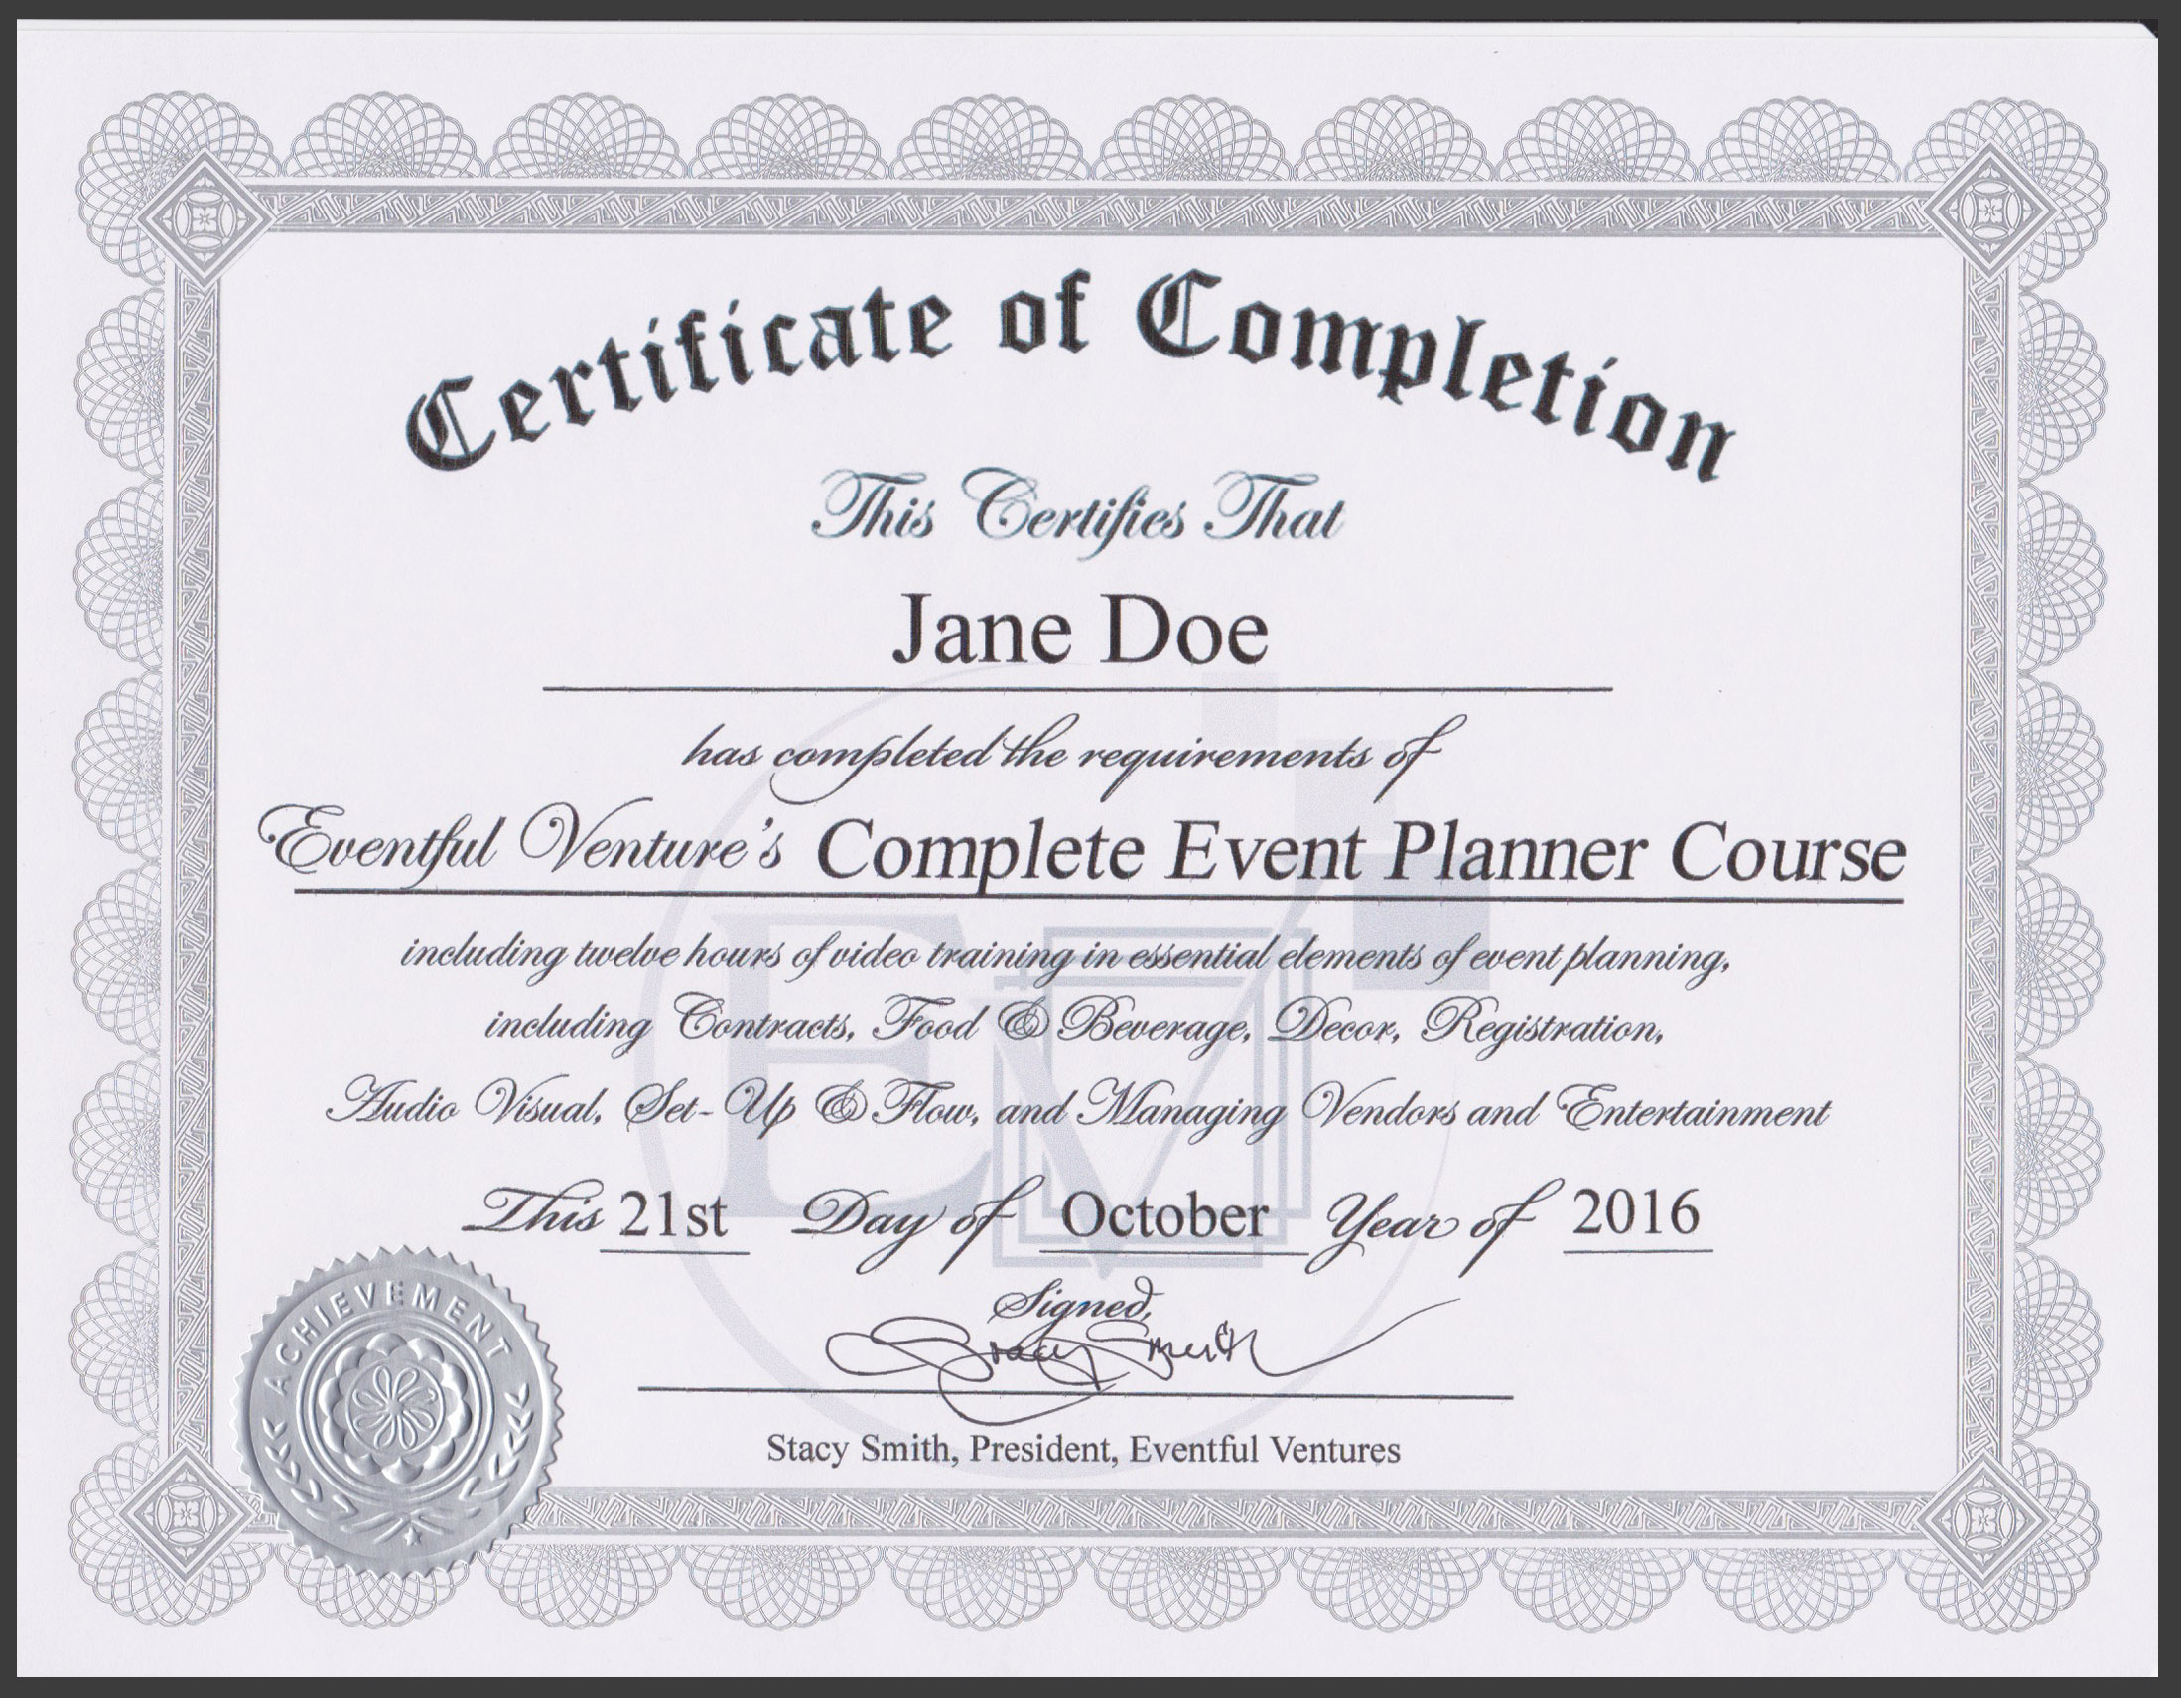 Event planner toolkit sale eventful ventures image of an event planning certificate 1betcityfo Choice Image